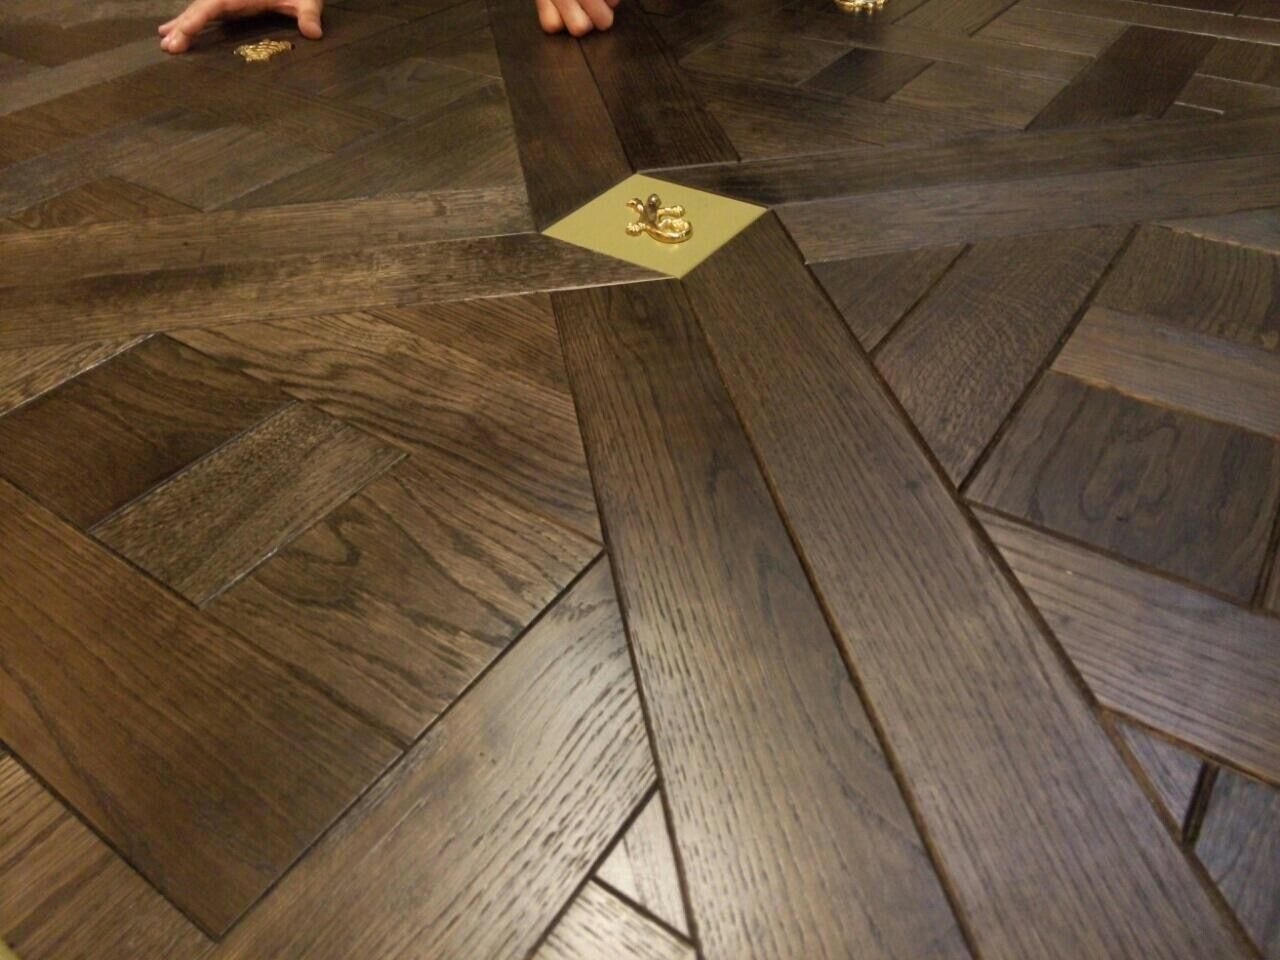 Luxury, Bespoke, Handcrafted Parquet Flooring Panels from